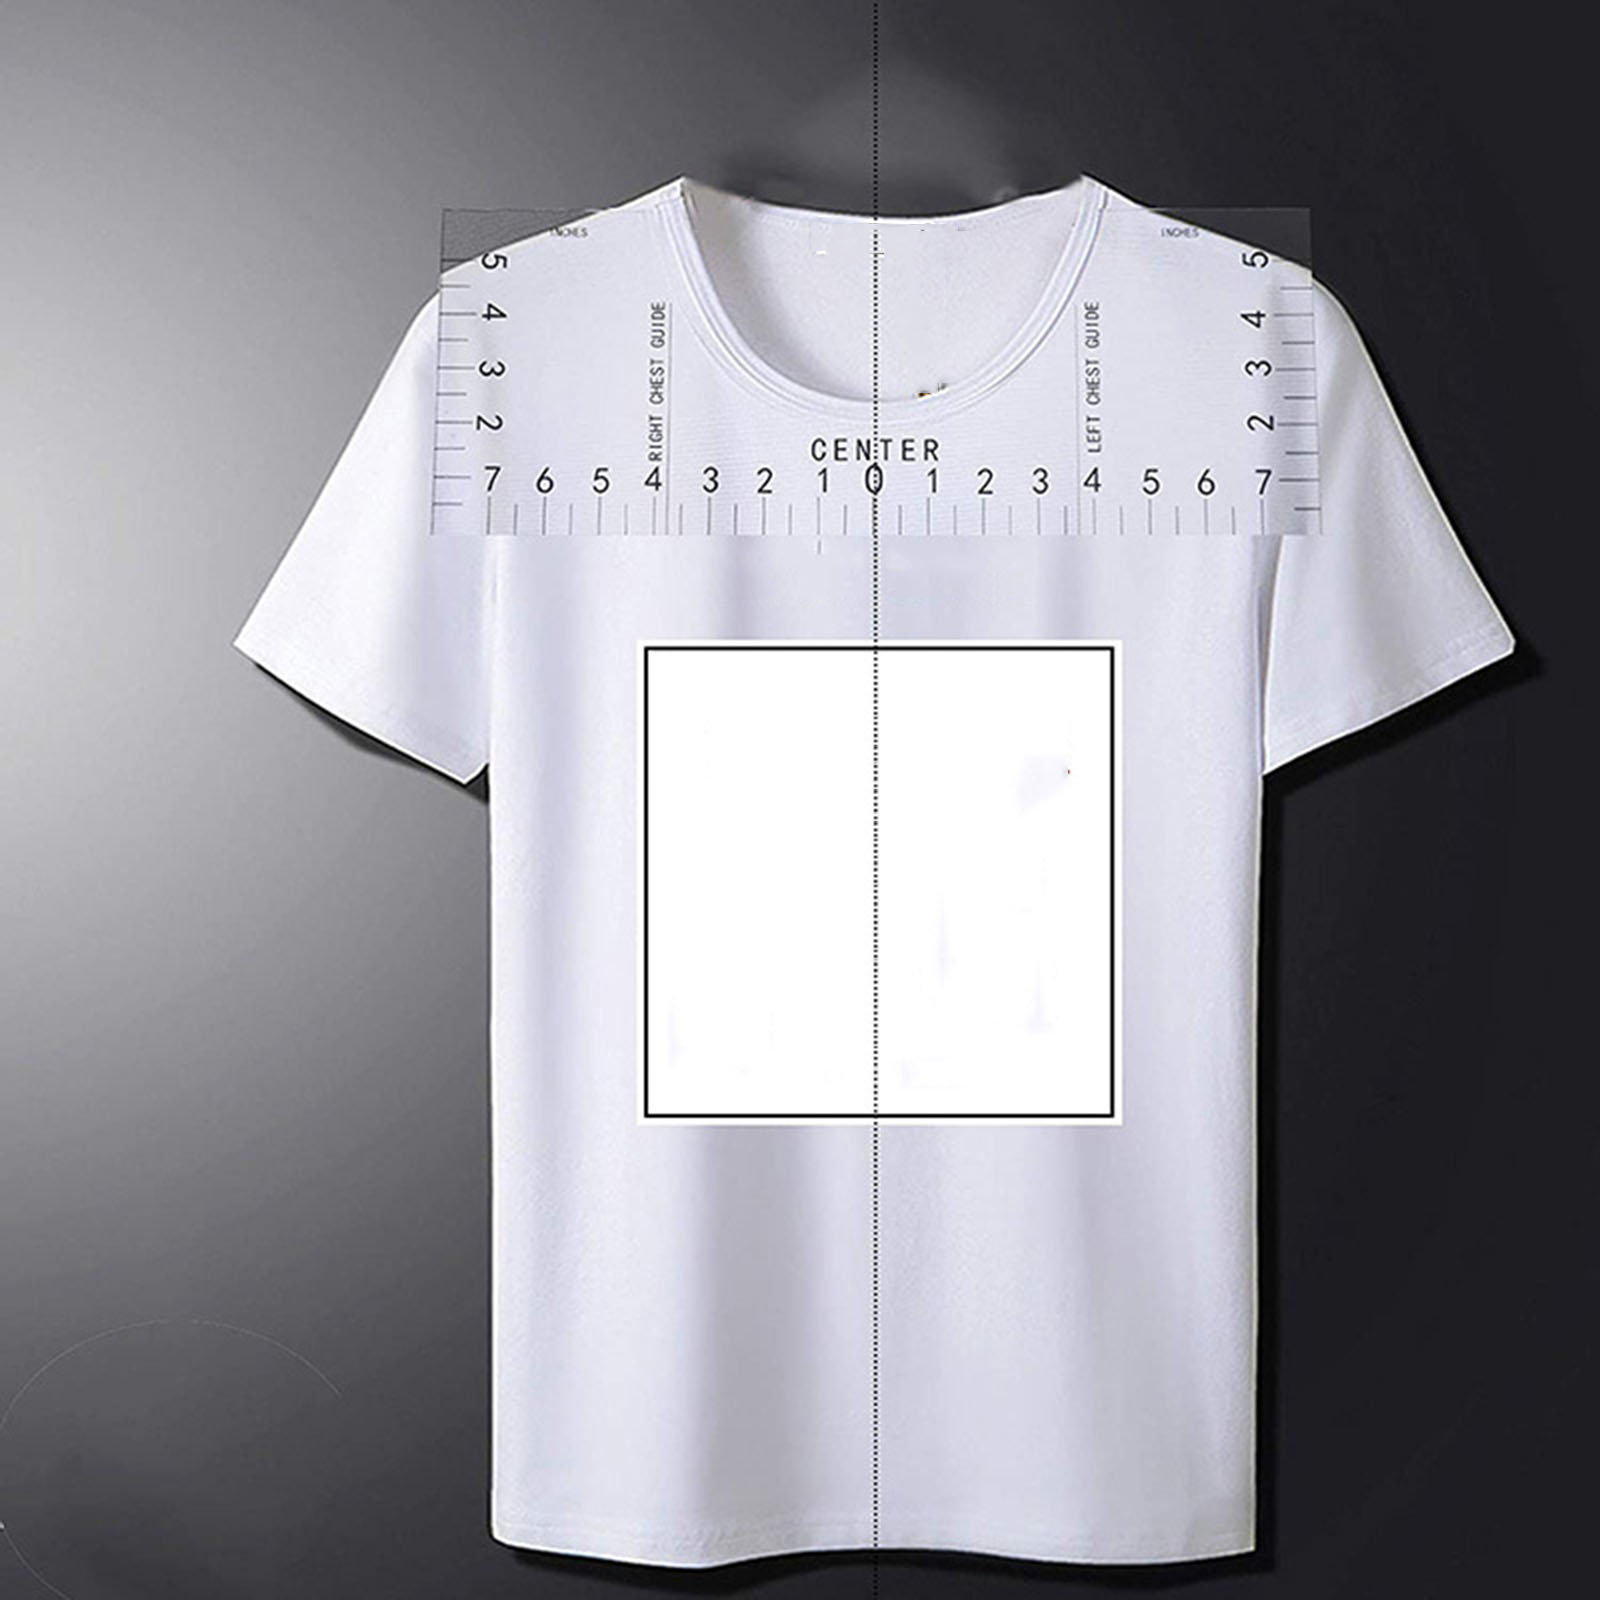 N/ählineal Set T-Shirt Lineal Guide Vinyl T-Shirt Lineal Guide Sublimation Designs Auf T-Shirt Vinyl Lineal Guide Gr/ö/ßentabelle T-Shirt Lineal klein// 10 6 Zoll